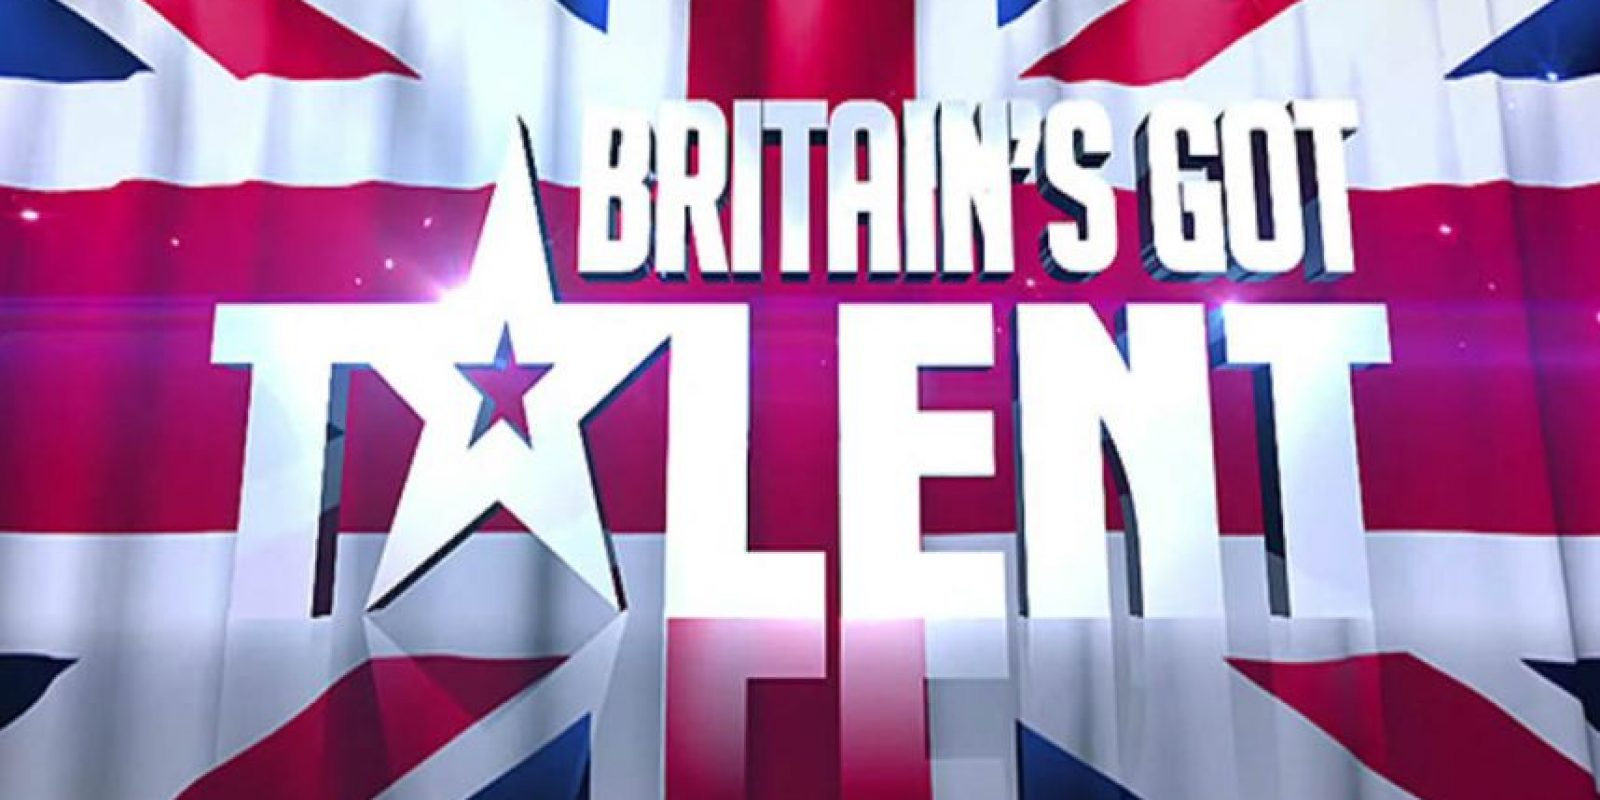 """Britain's Got Talent"" es un programa británico. Foto: Britain's Got Talent. Imagen Por:"